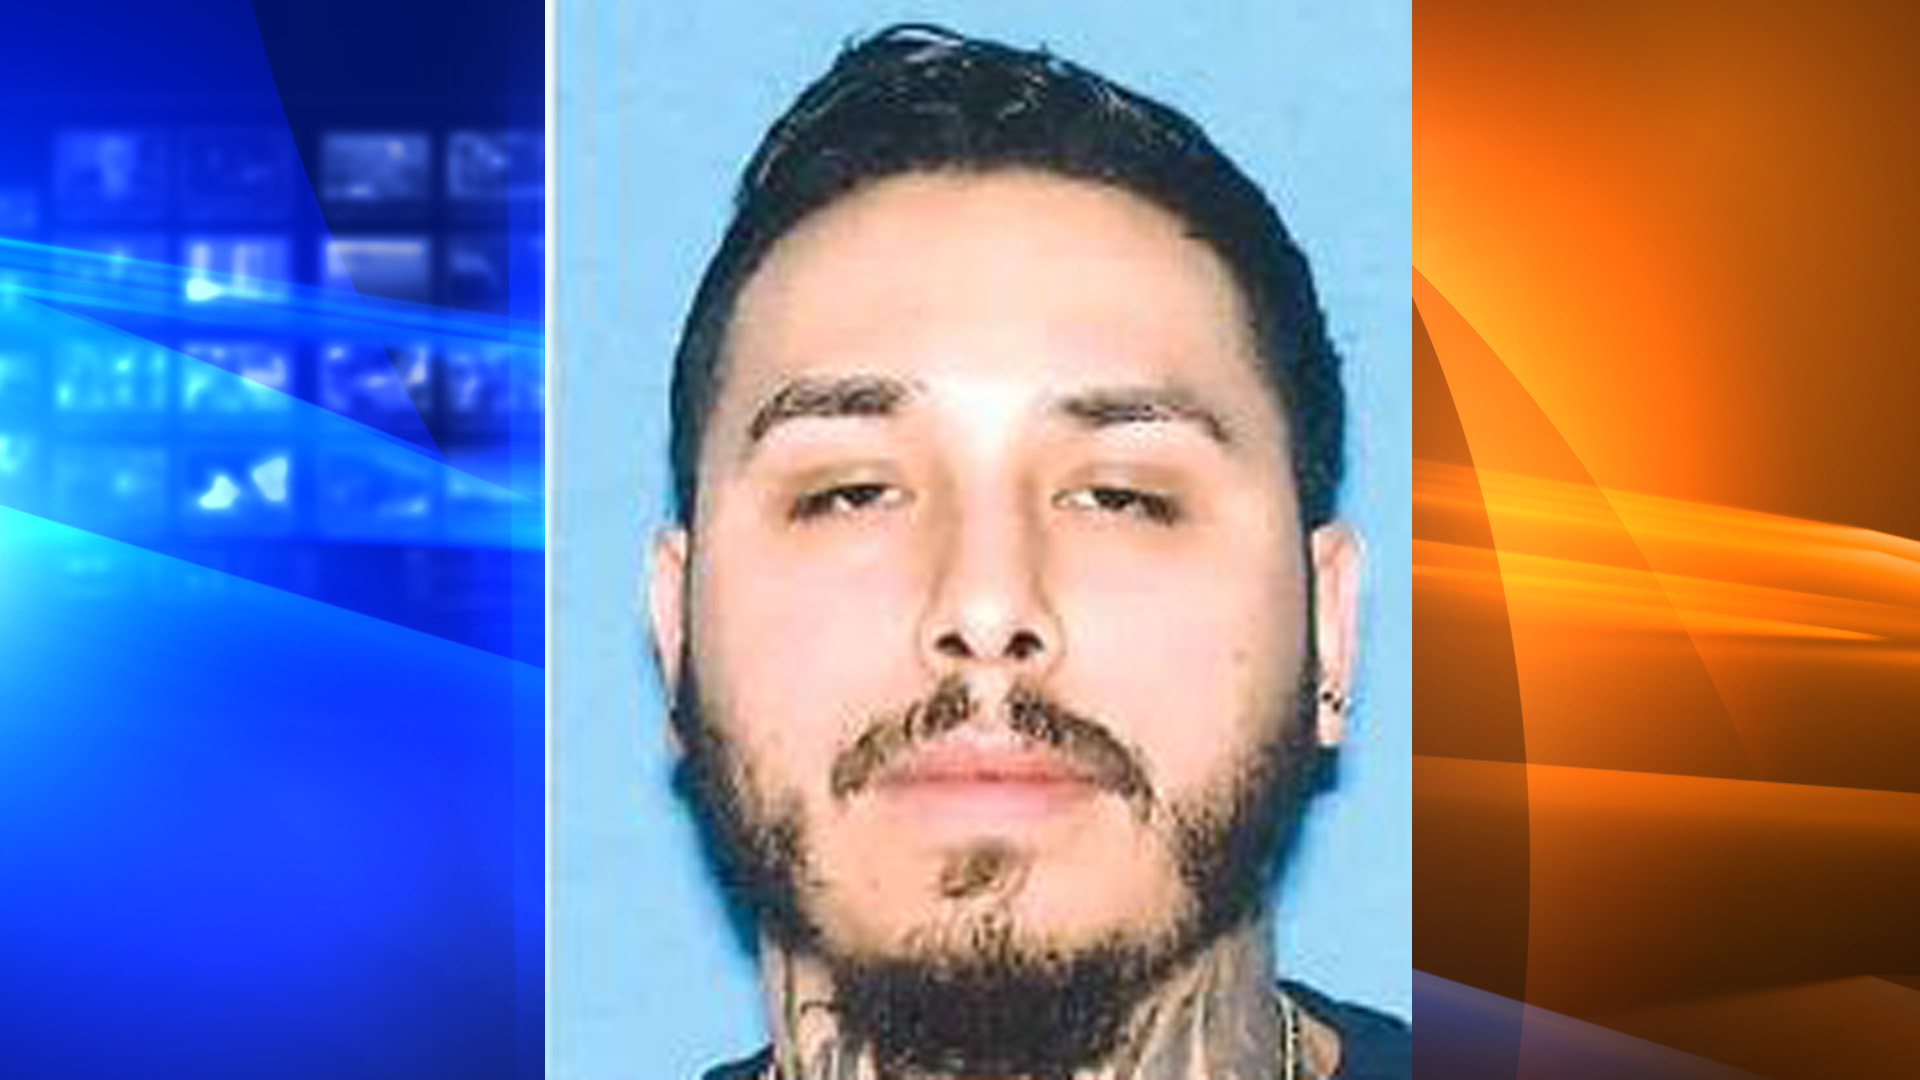 Euren Balbuena, 29, of Simi Valley is seen in a booking photo shared by the Simi Valley Police Department on Feb 27, 2020.